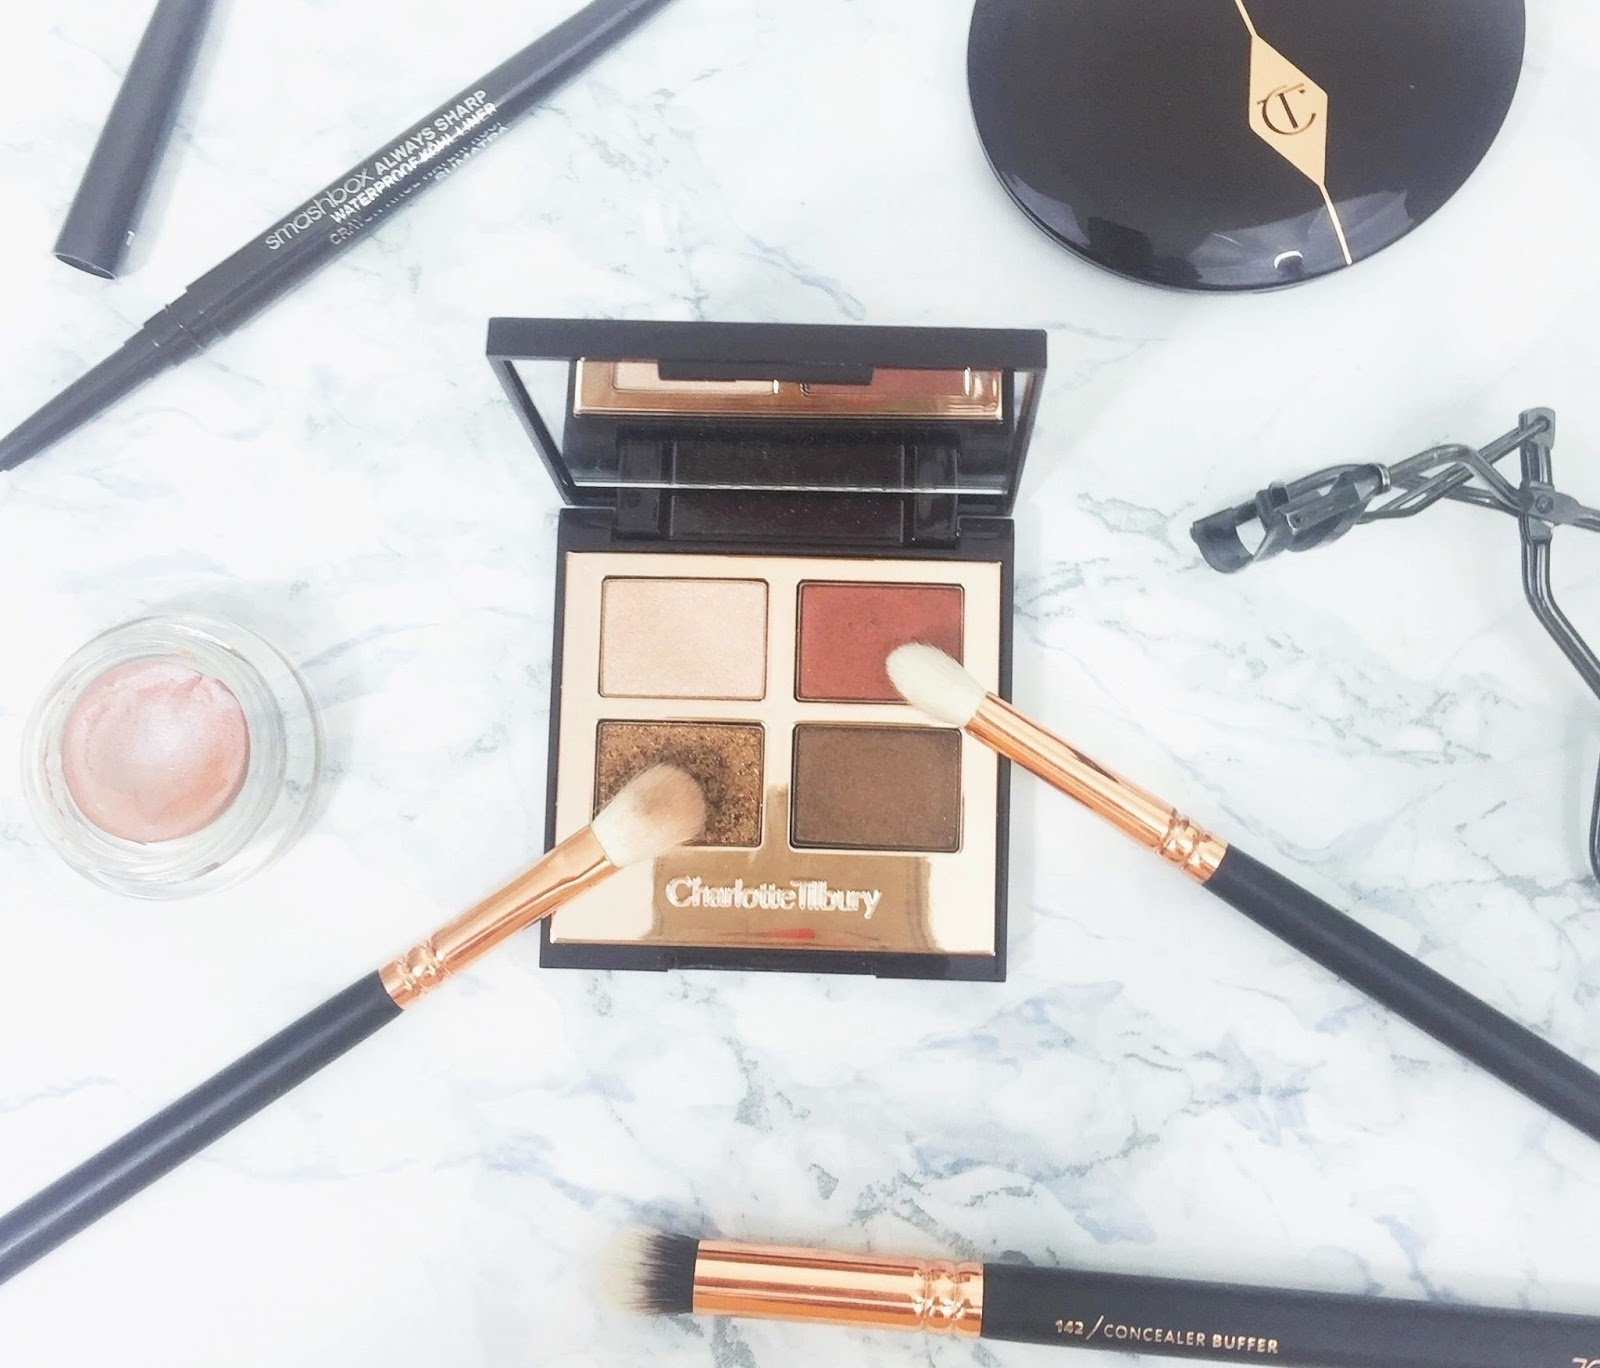 Charlotte Tilbury The Dolce Vita Eyeshadow Quad Review